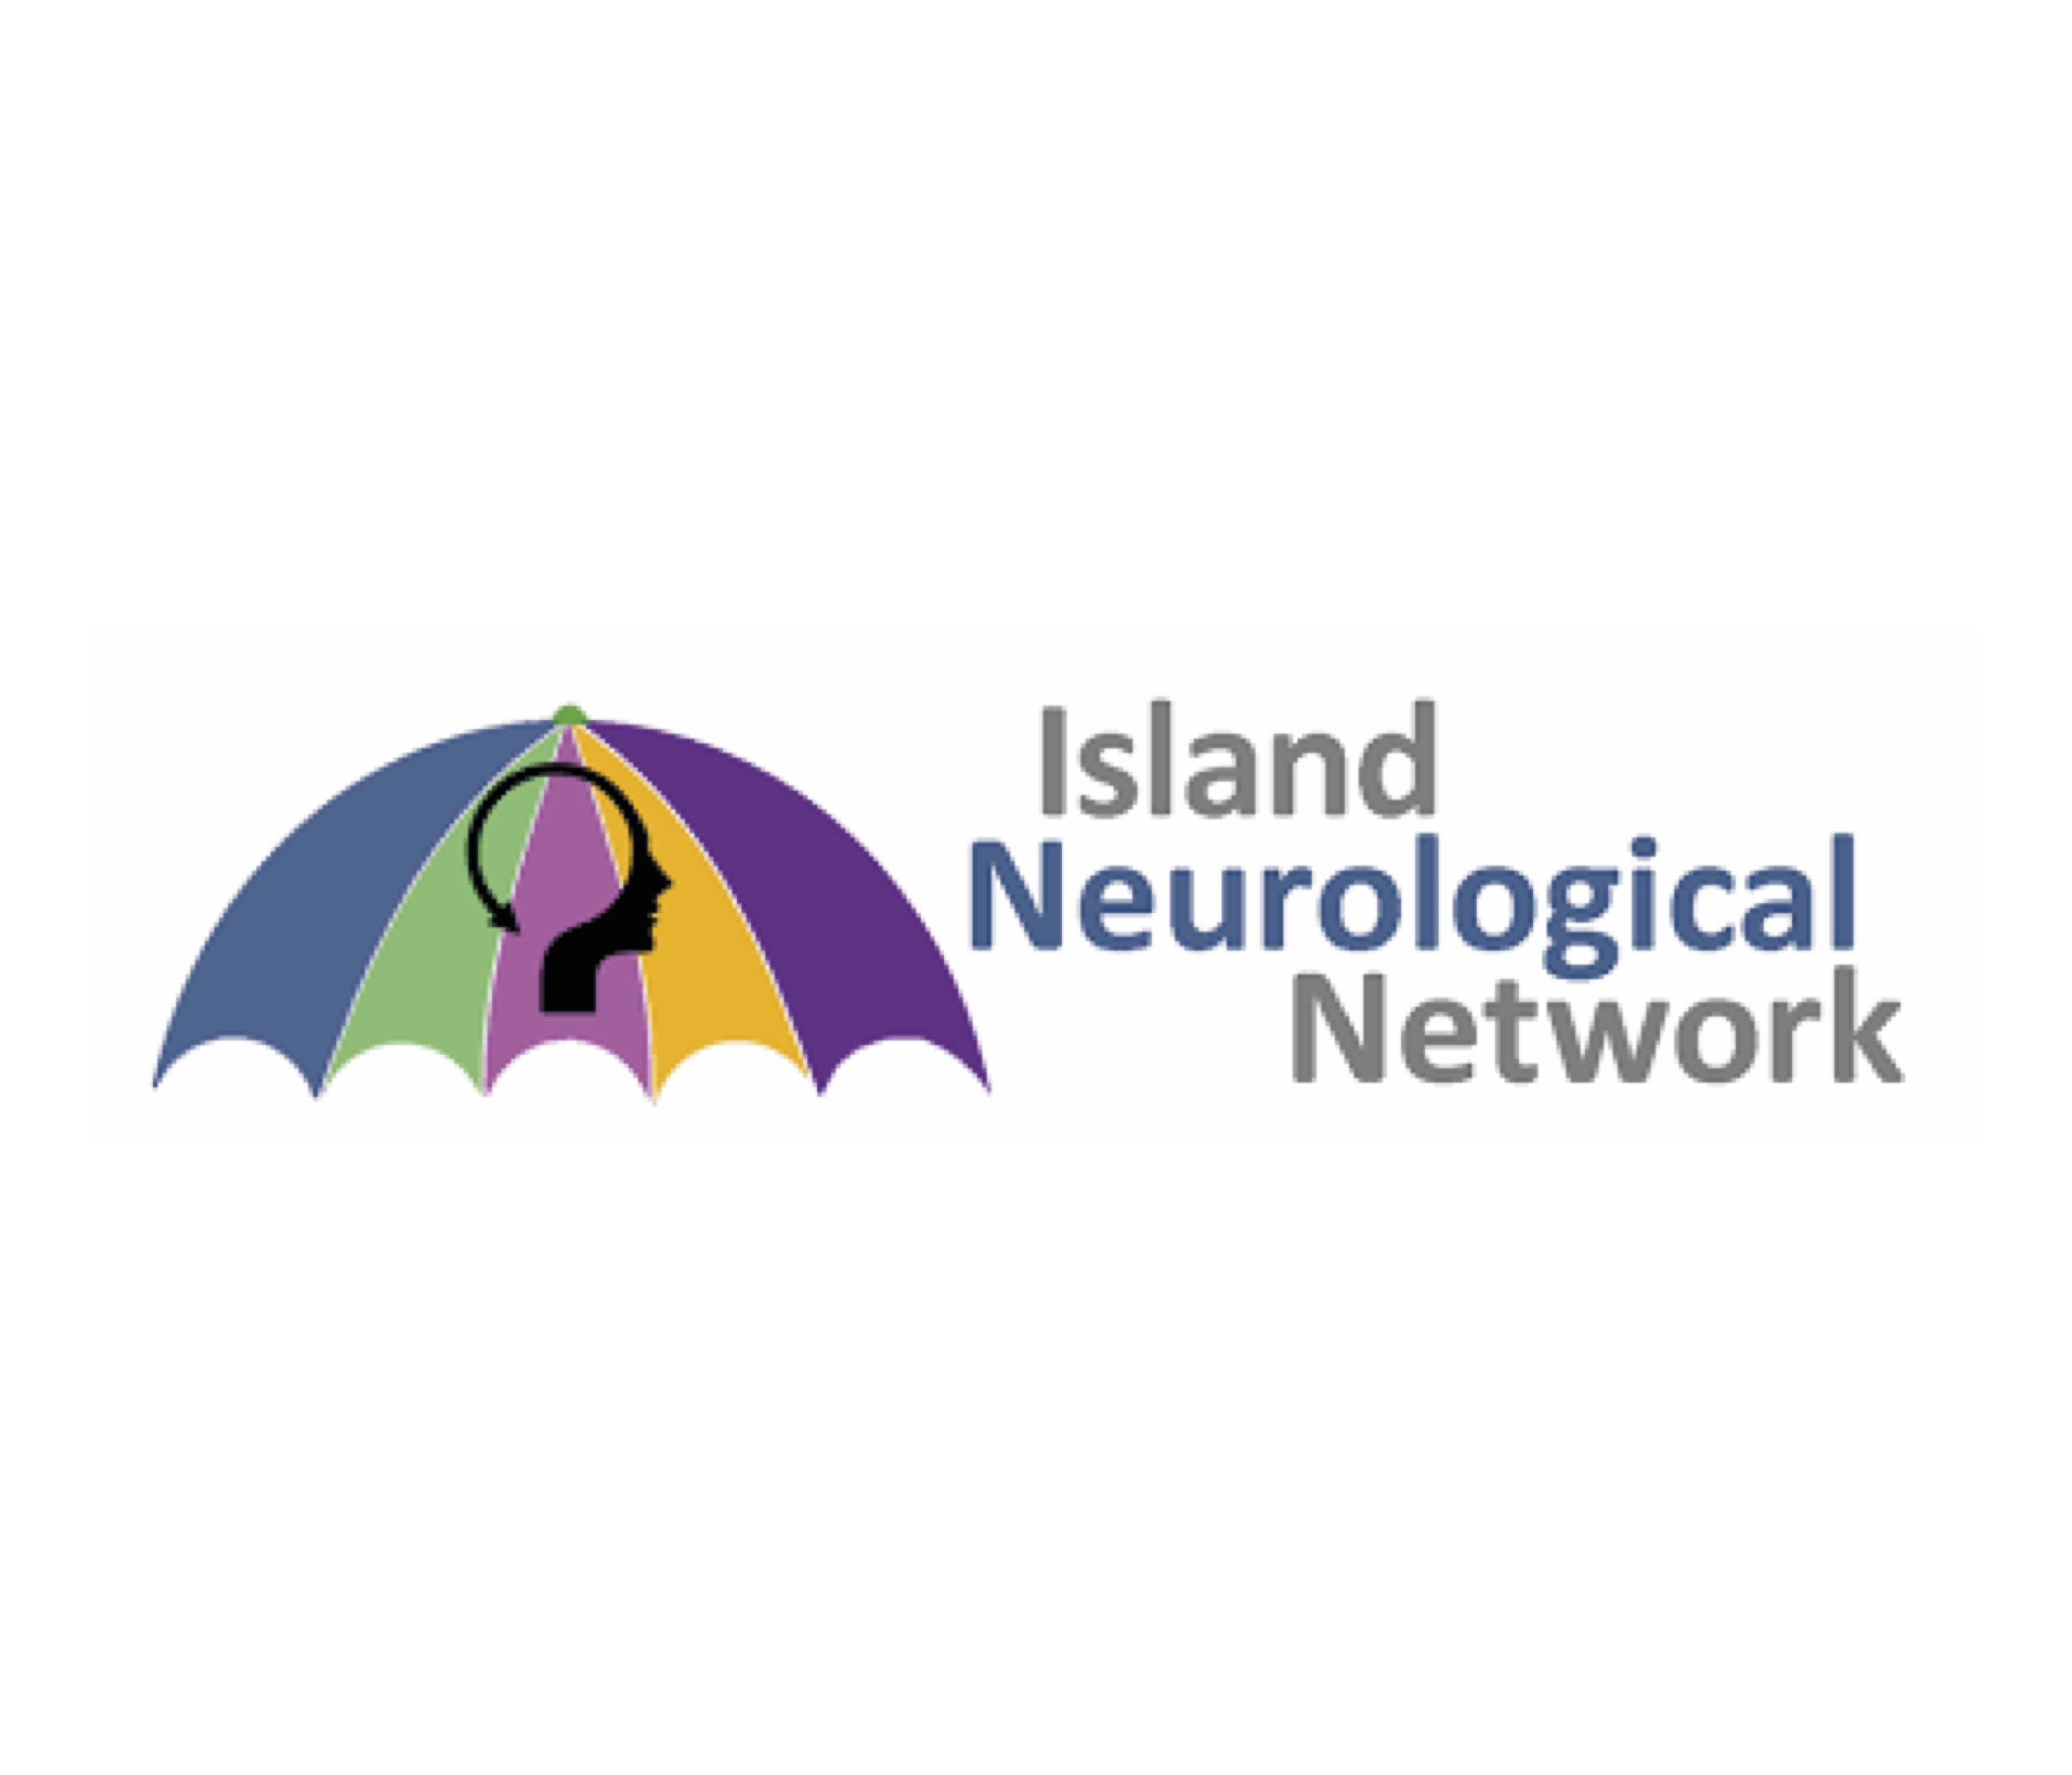 15 island neurological network.jpg